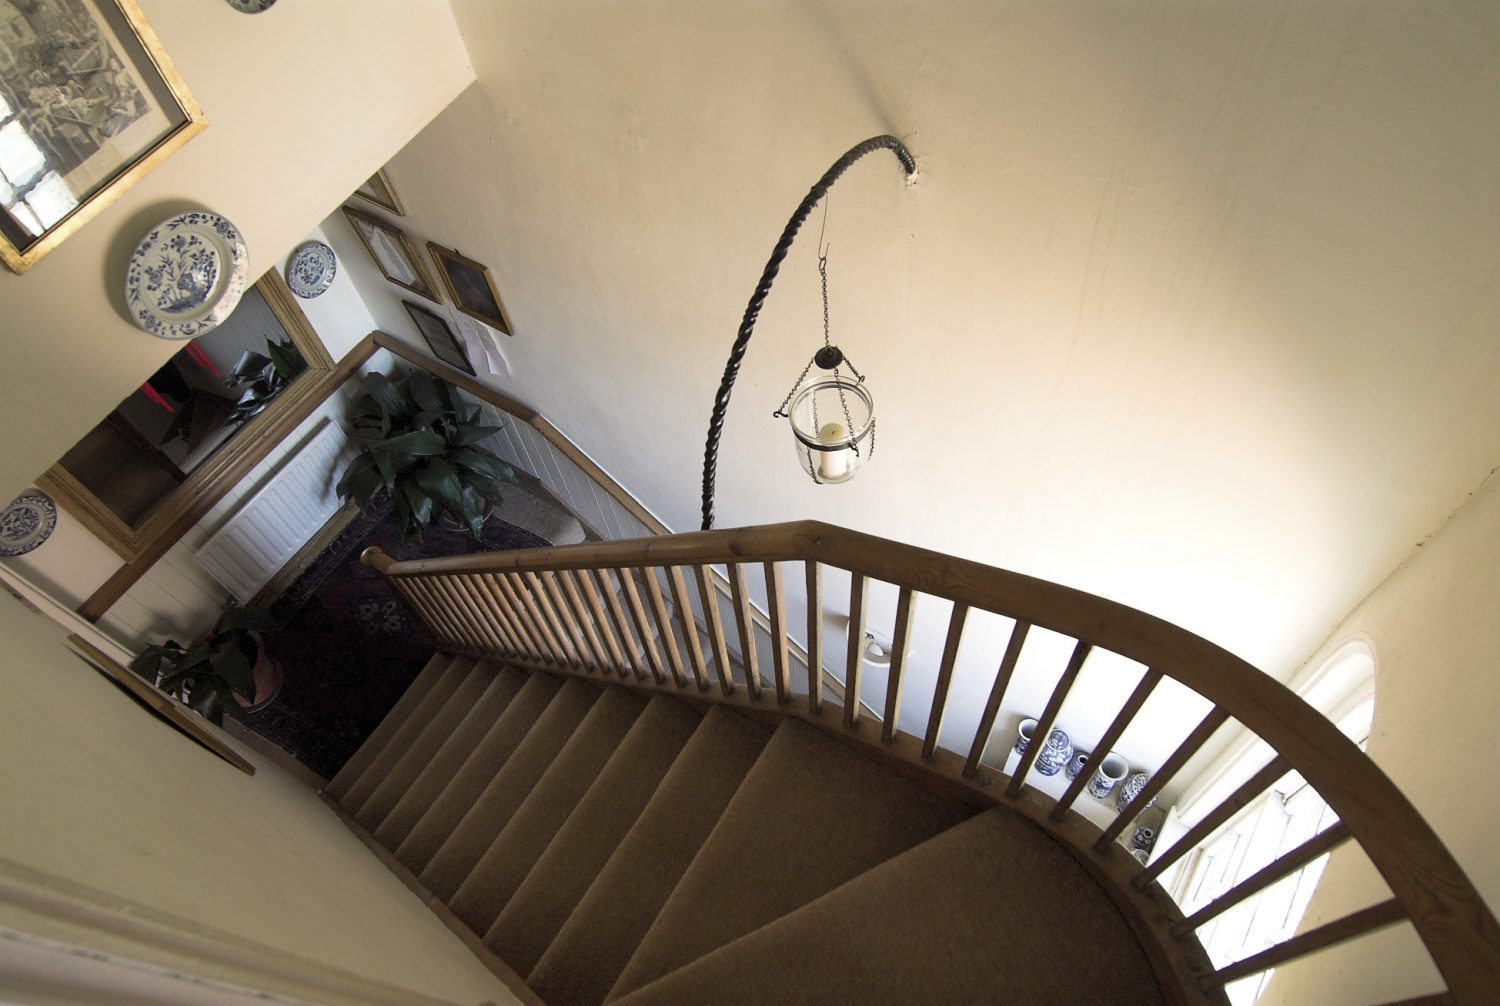 The vertigo-inducing staircase leads up to Bob's bedroom from the first floor